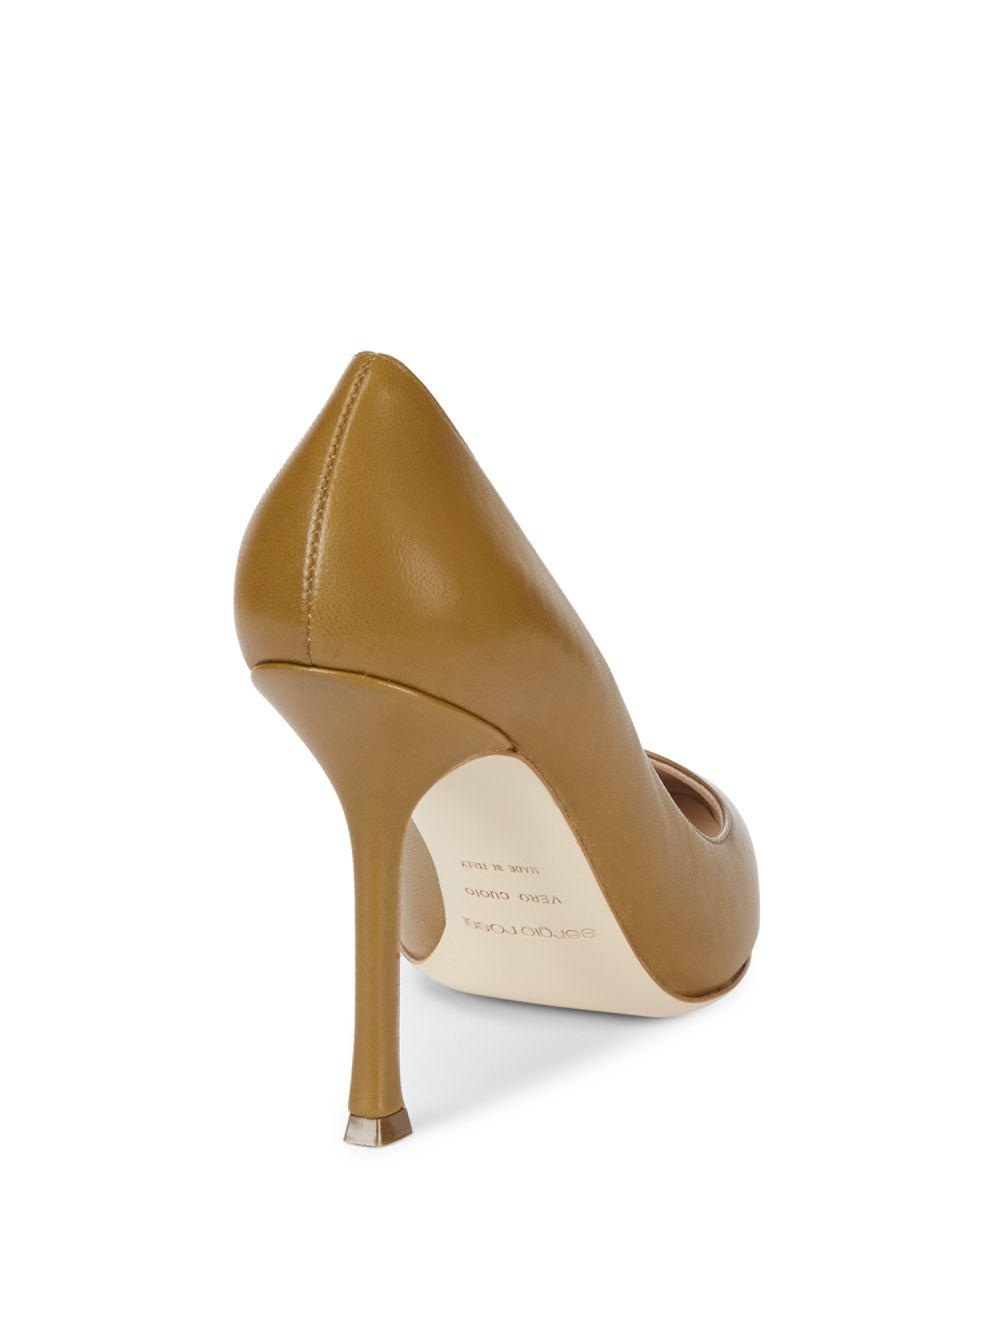 dedecbd7ddb Lyst - Sergio Rossi Leather Stiletto Pumps in Natural - Save  55.55555555555556%